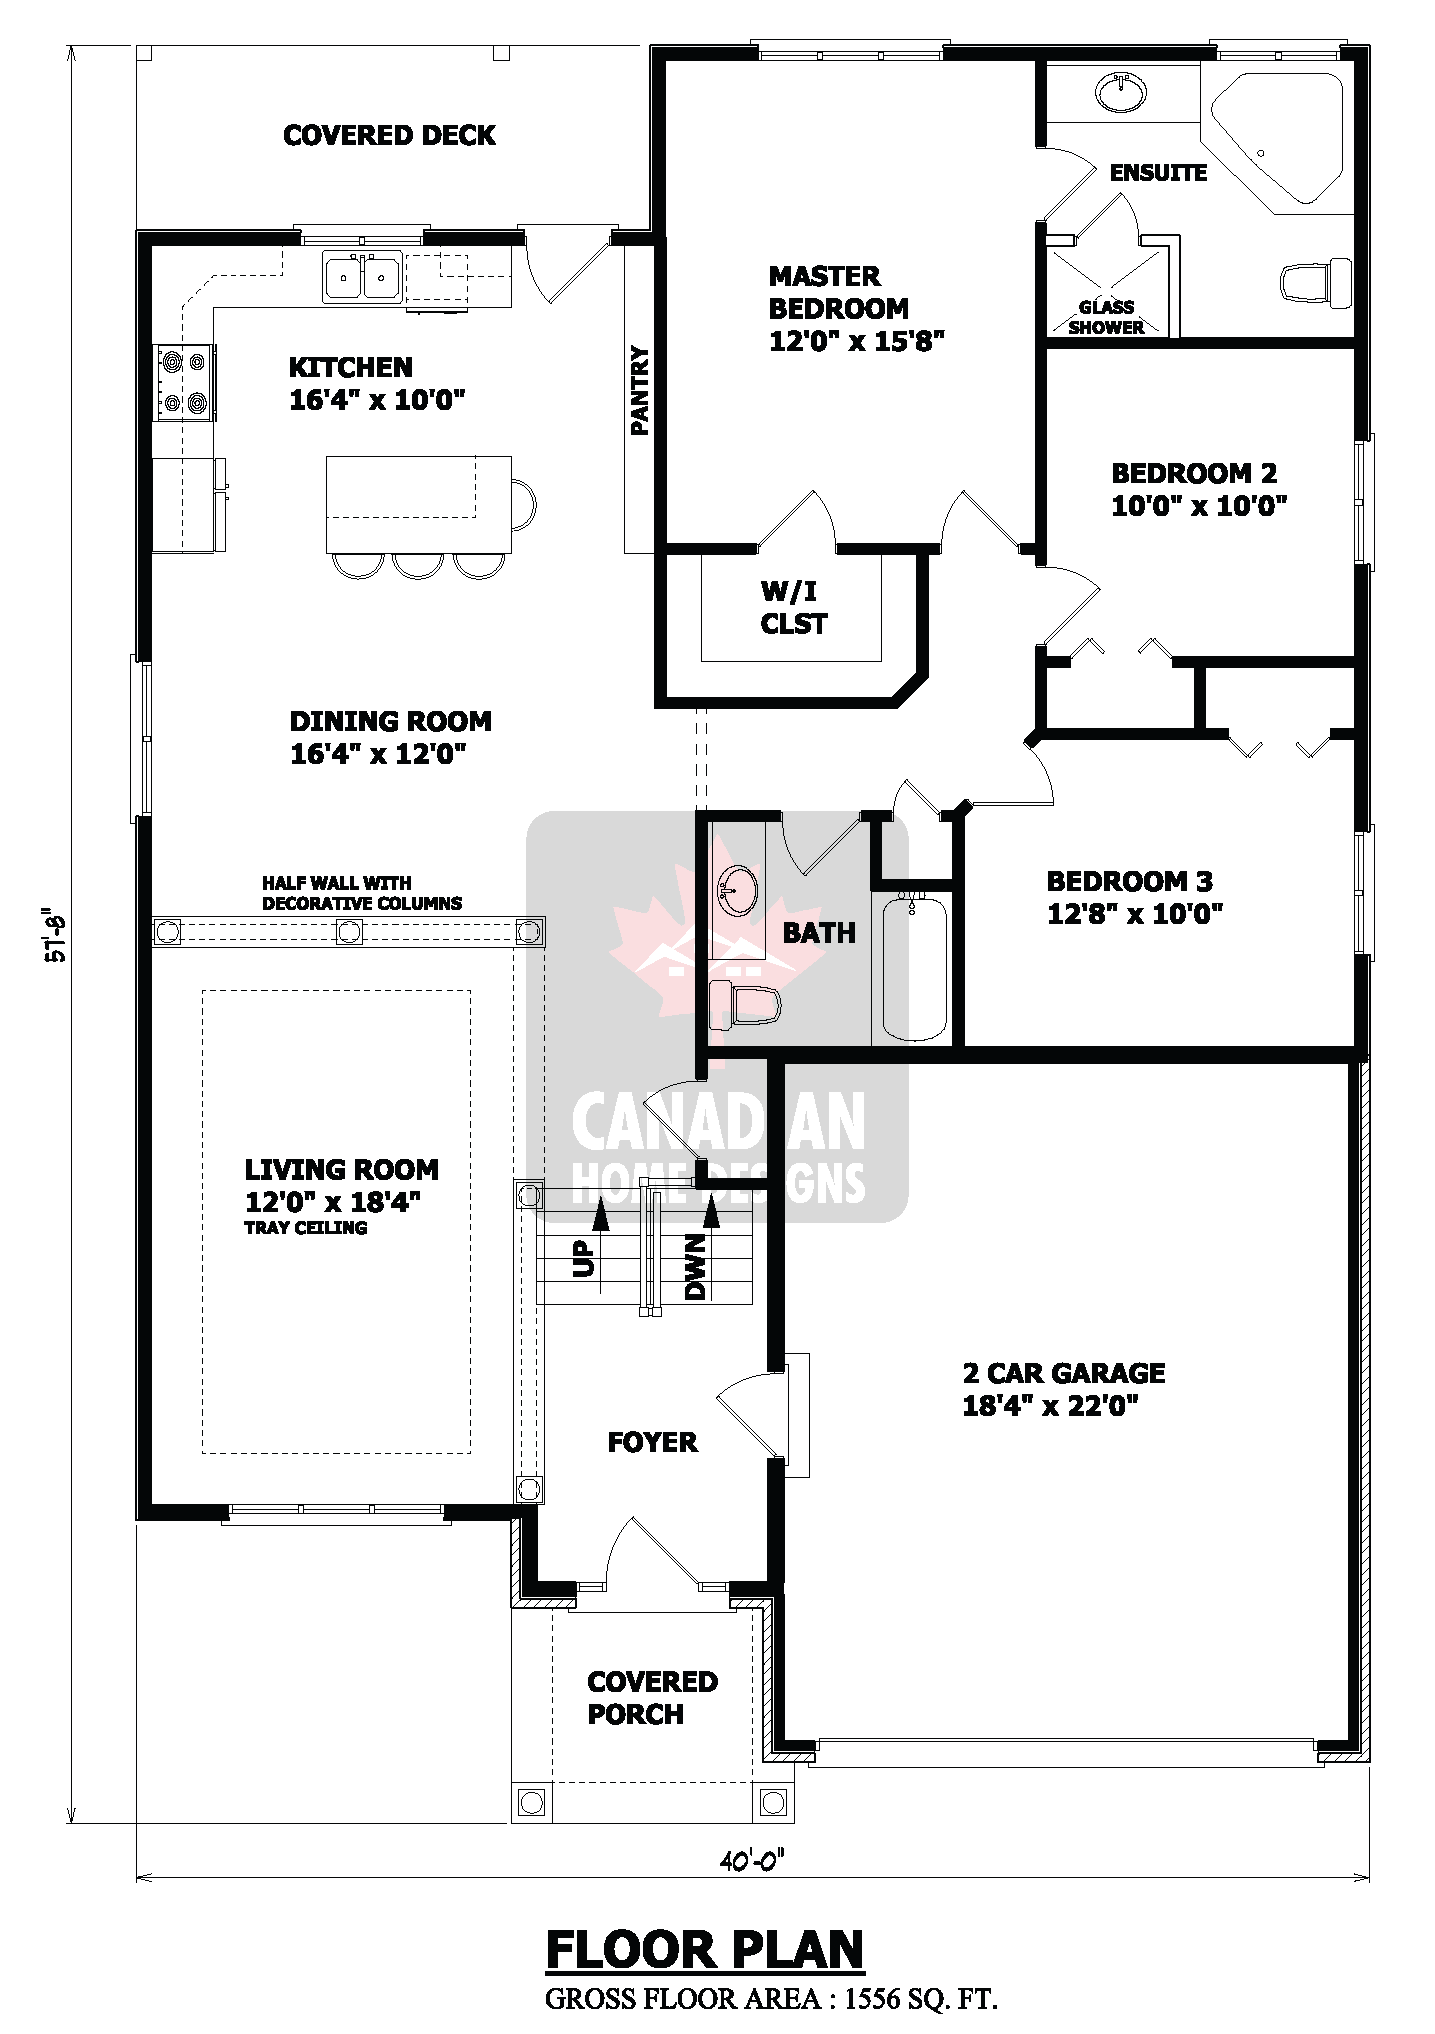 House Plans Home Designs Blog Archive Small House Plans 88055